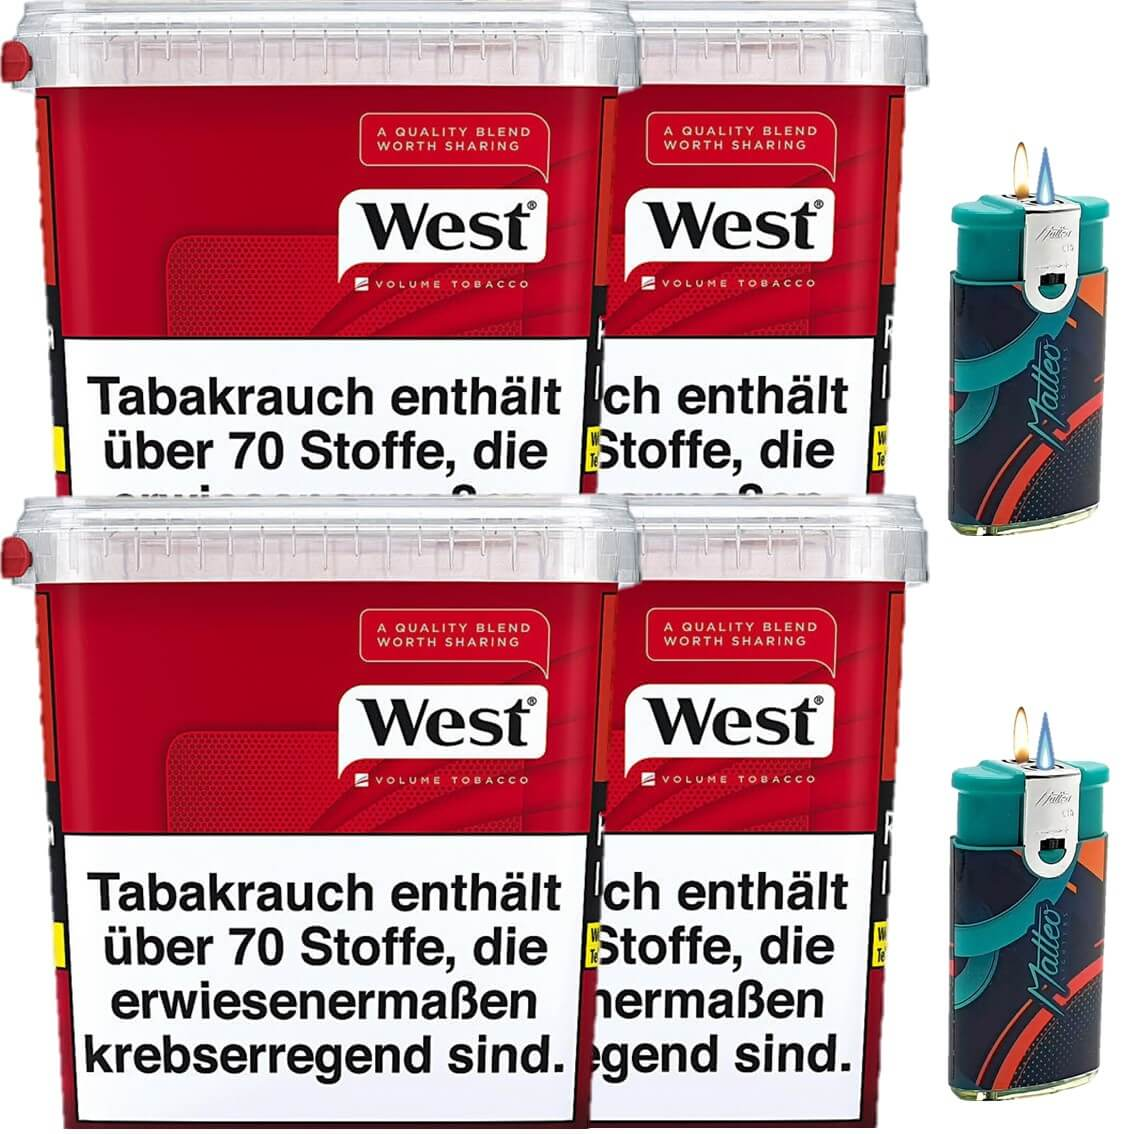 West Red 4 x 300g Volumentabak 2 x Duo Feuerzeuge mit 2 Flammen